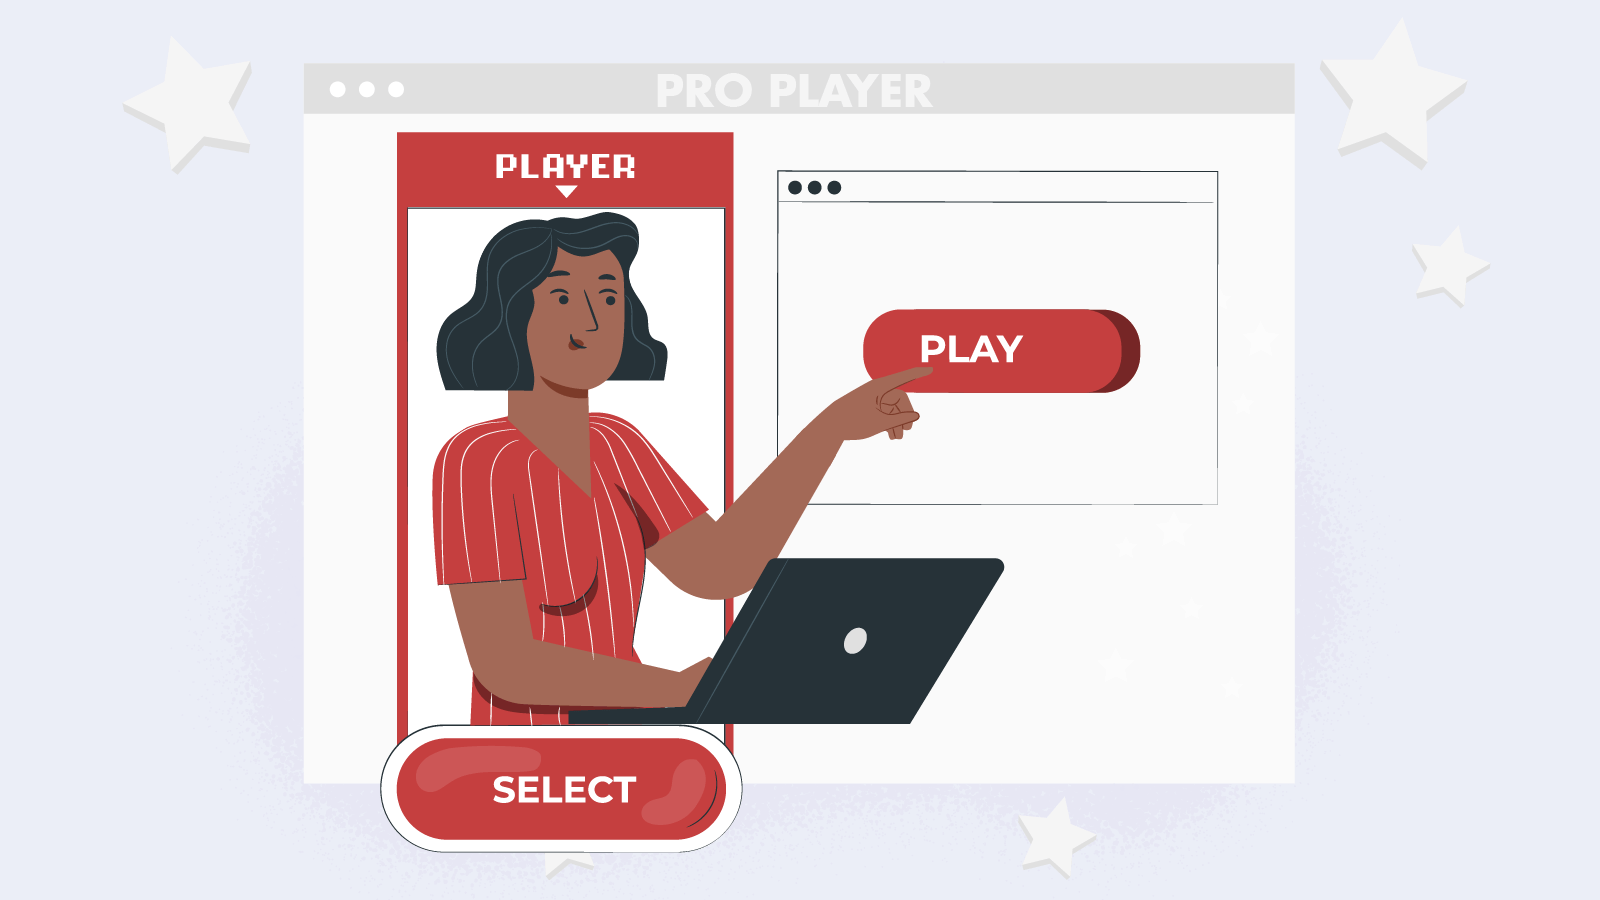 How to claim and advice from pro players